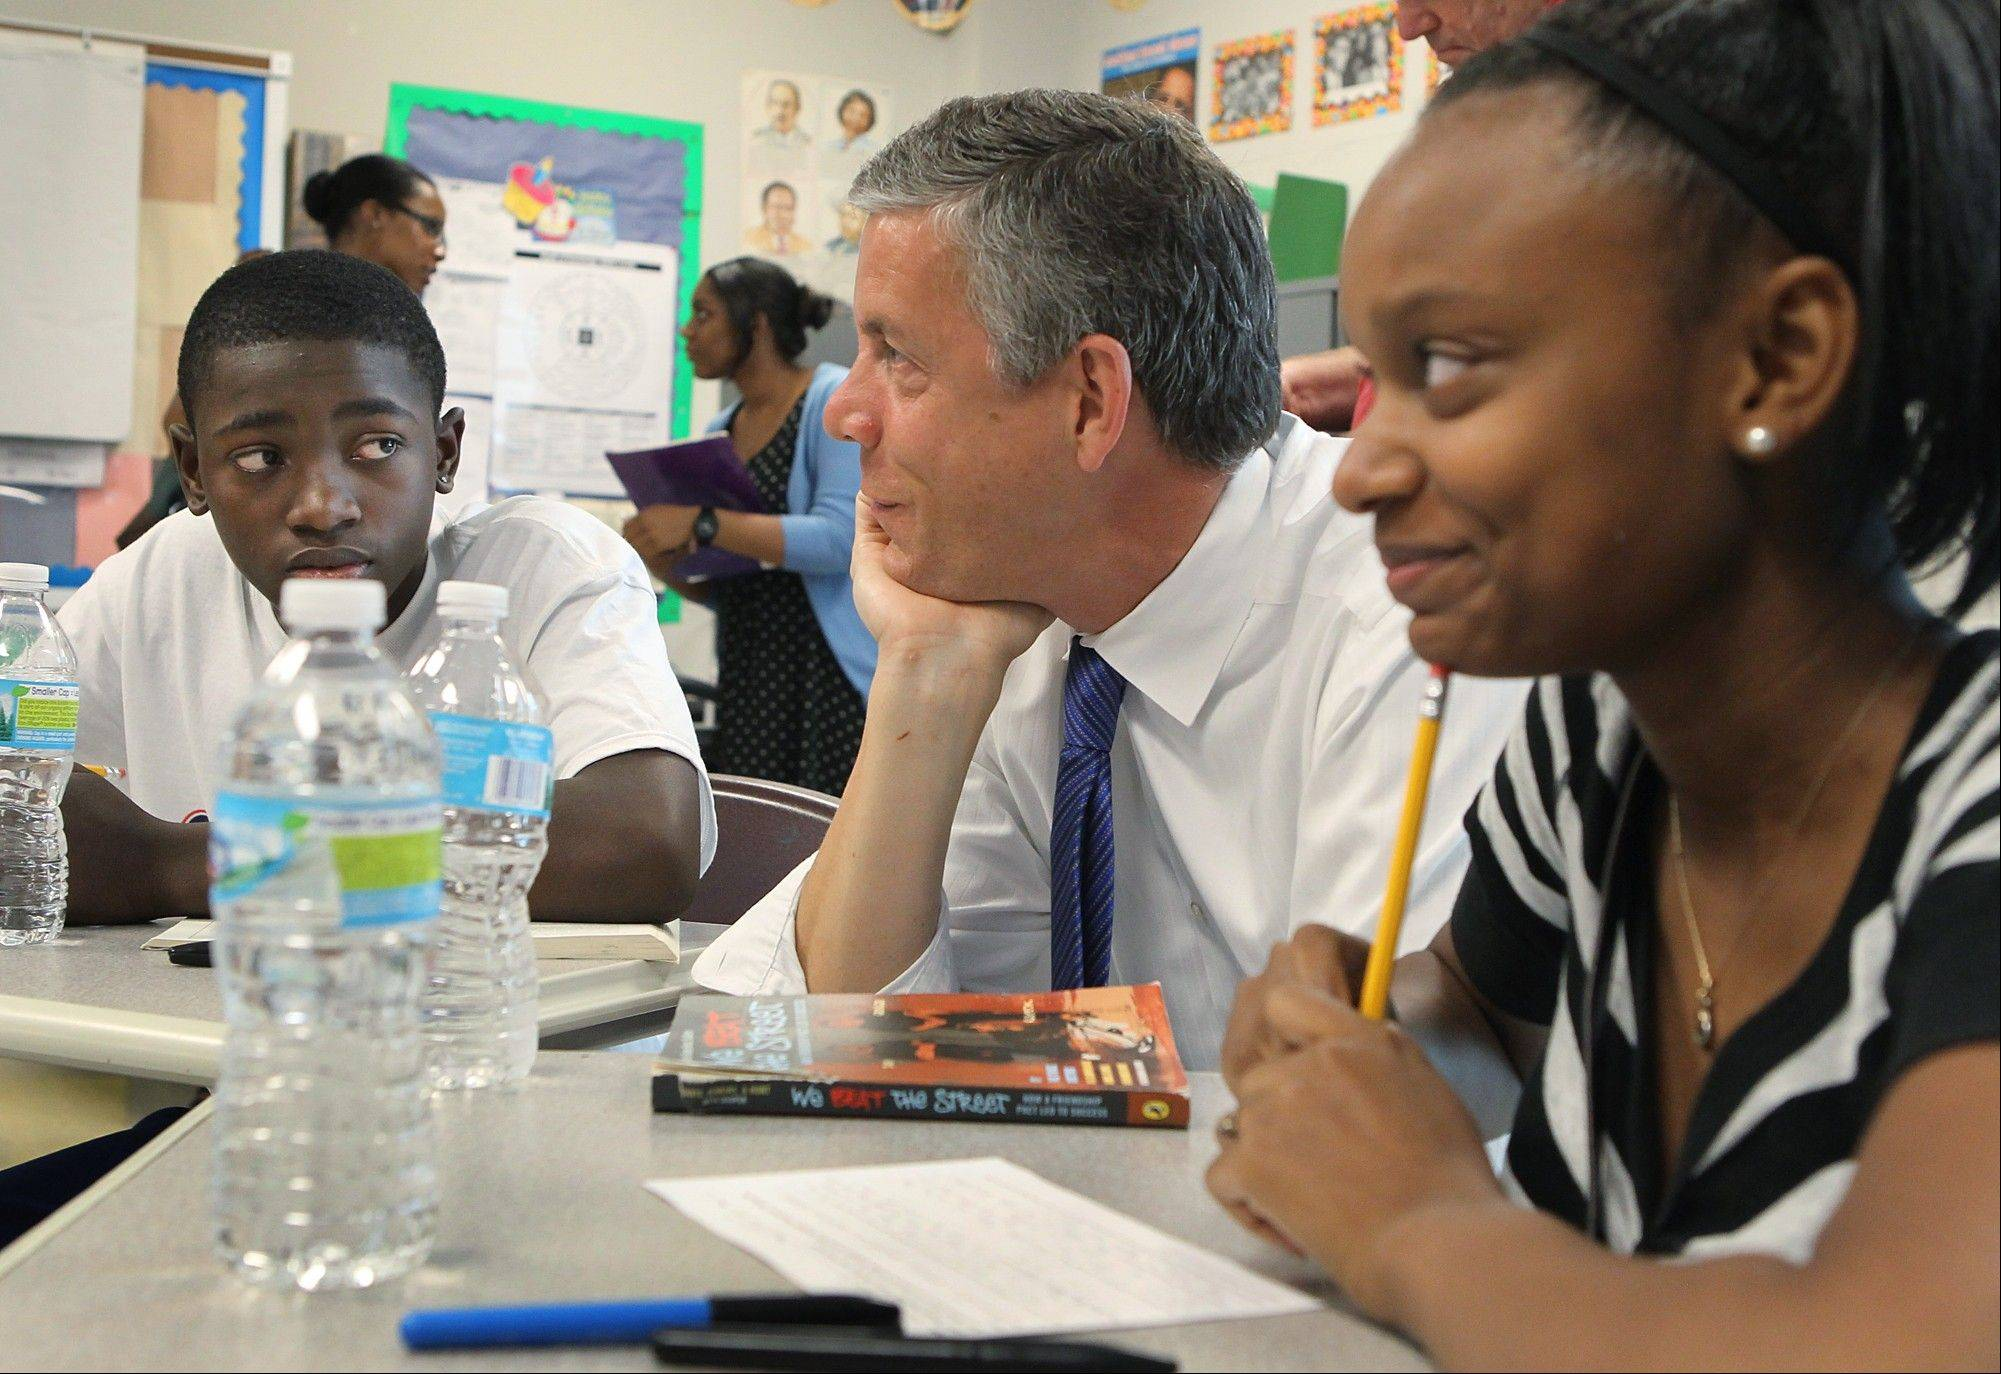 U.S. Secretary of Education Arne Duncan, center, visits with students in St. Louis. Two more states — Wisconsin and Washington — have been granted relief from key requirements of the Bush-era No Child Left Behind law.